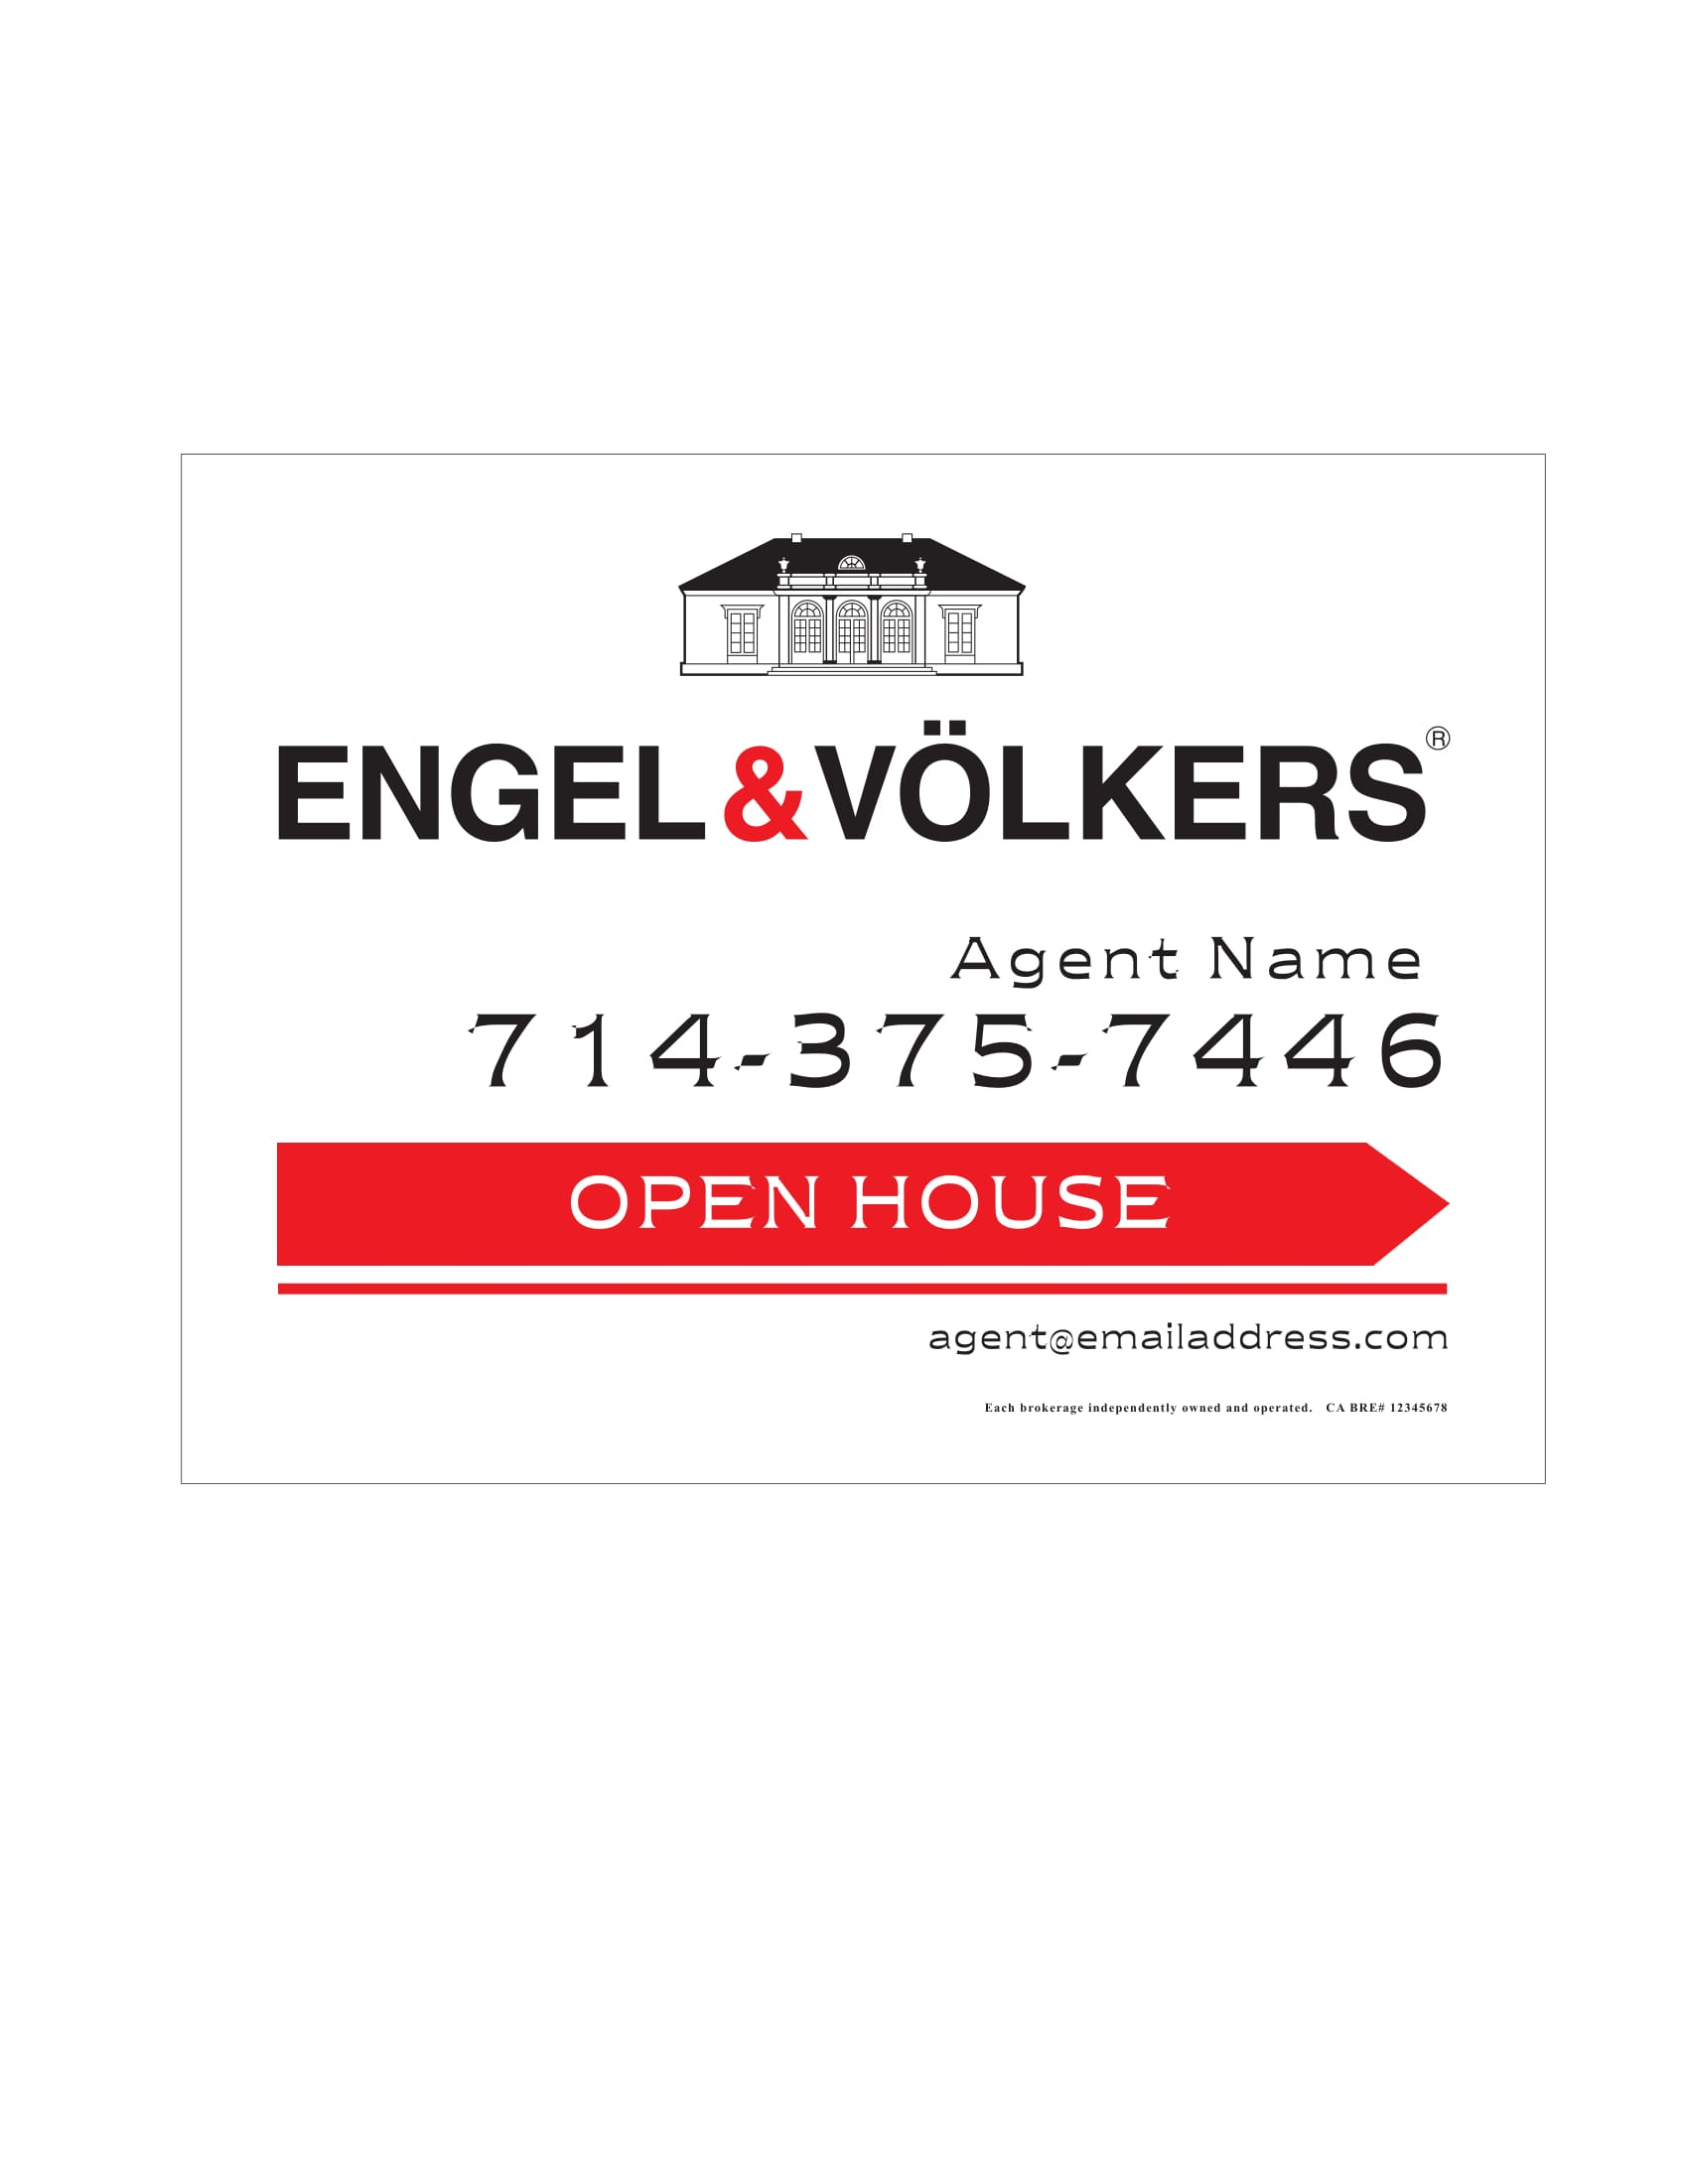 Engel & Volkers Open House Signs